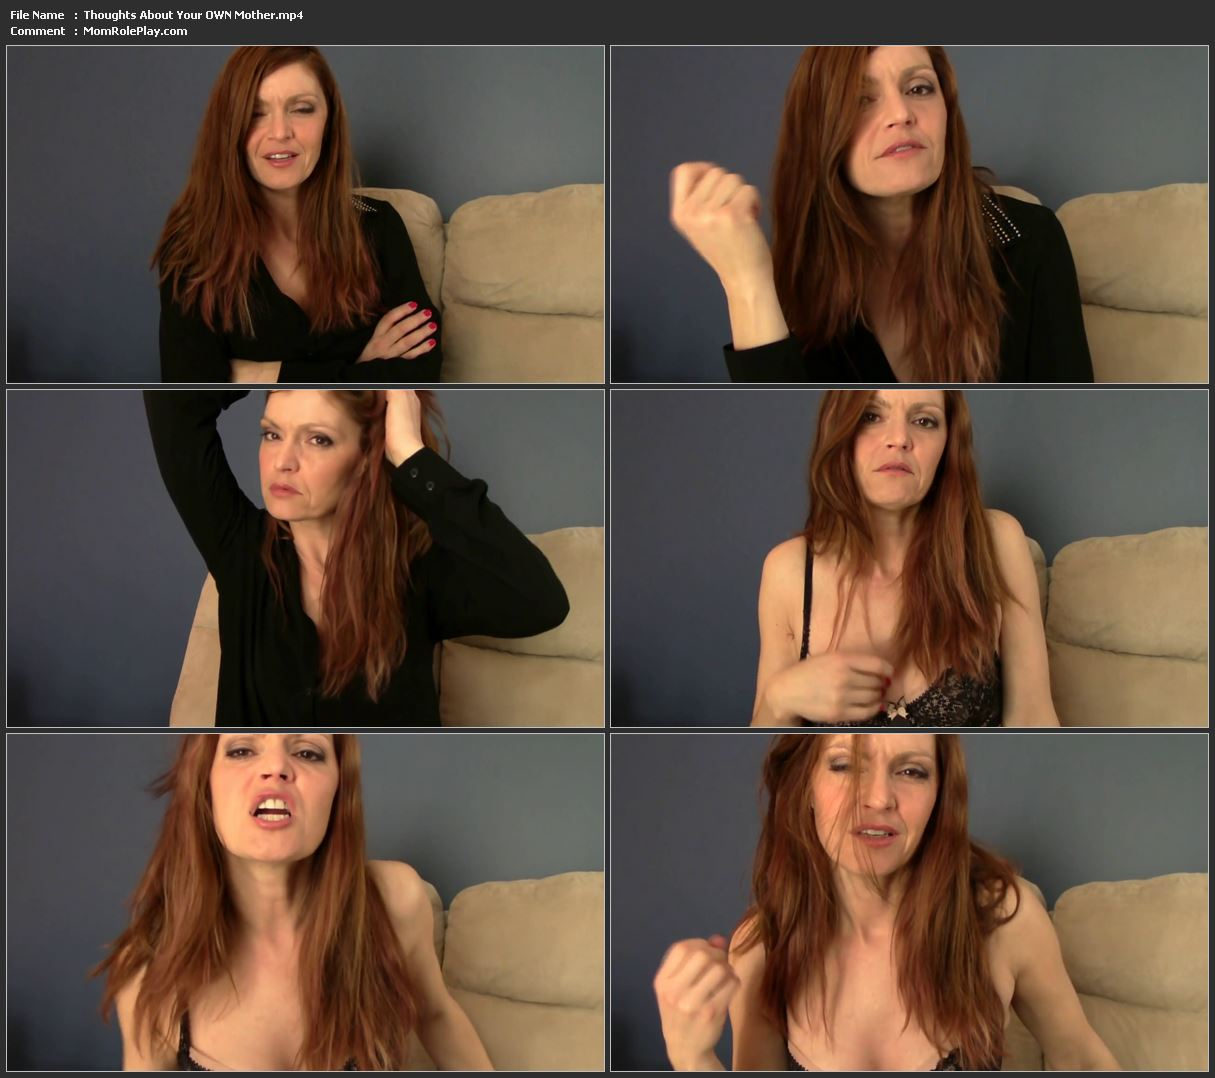 Taboo Mom Natasha - Thoughts About Your OWN Mother